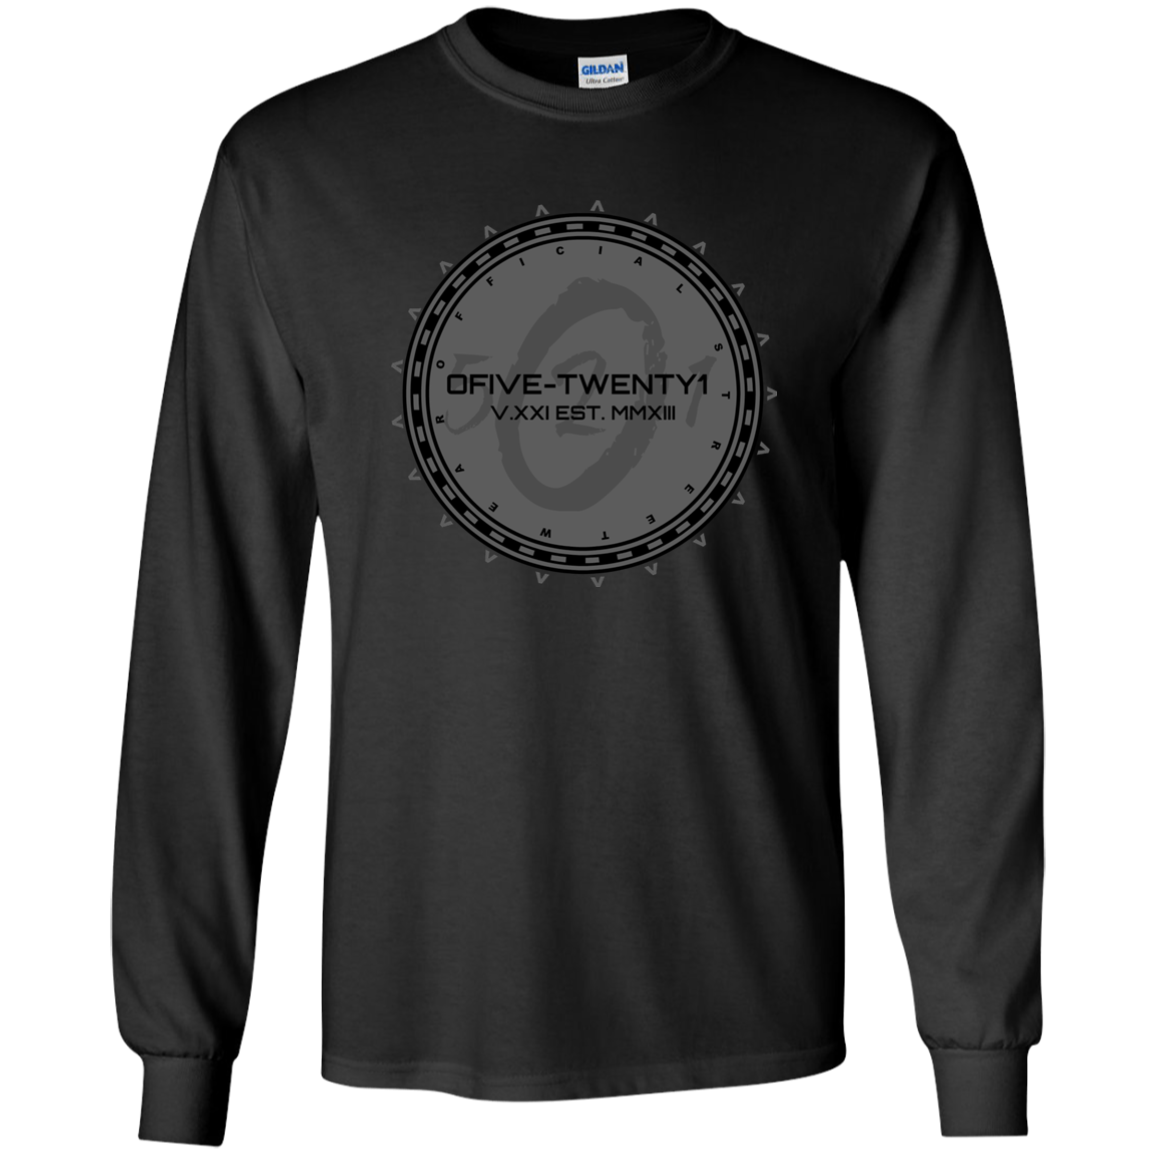 OFiveTwenty1 LS Ultra Cotton T-Shirt